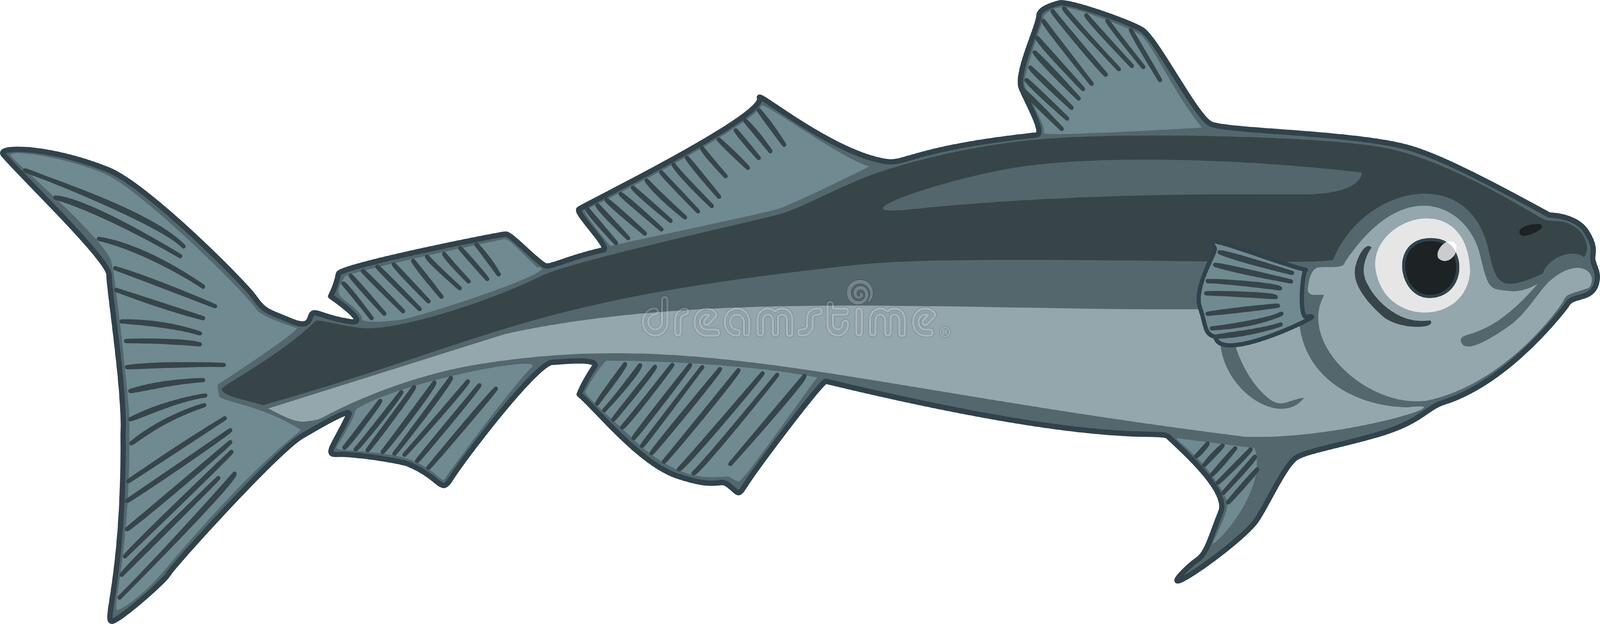 Arctic Cod. Illustration the arctic cod fish vector illustration